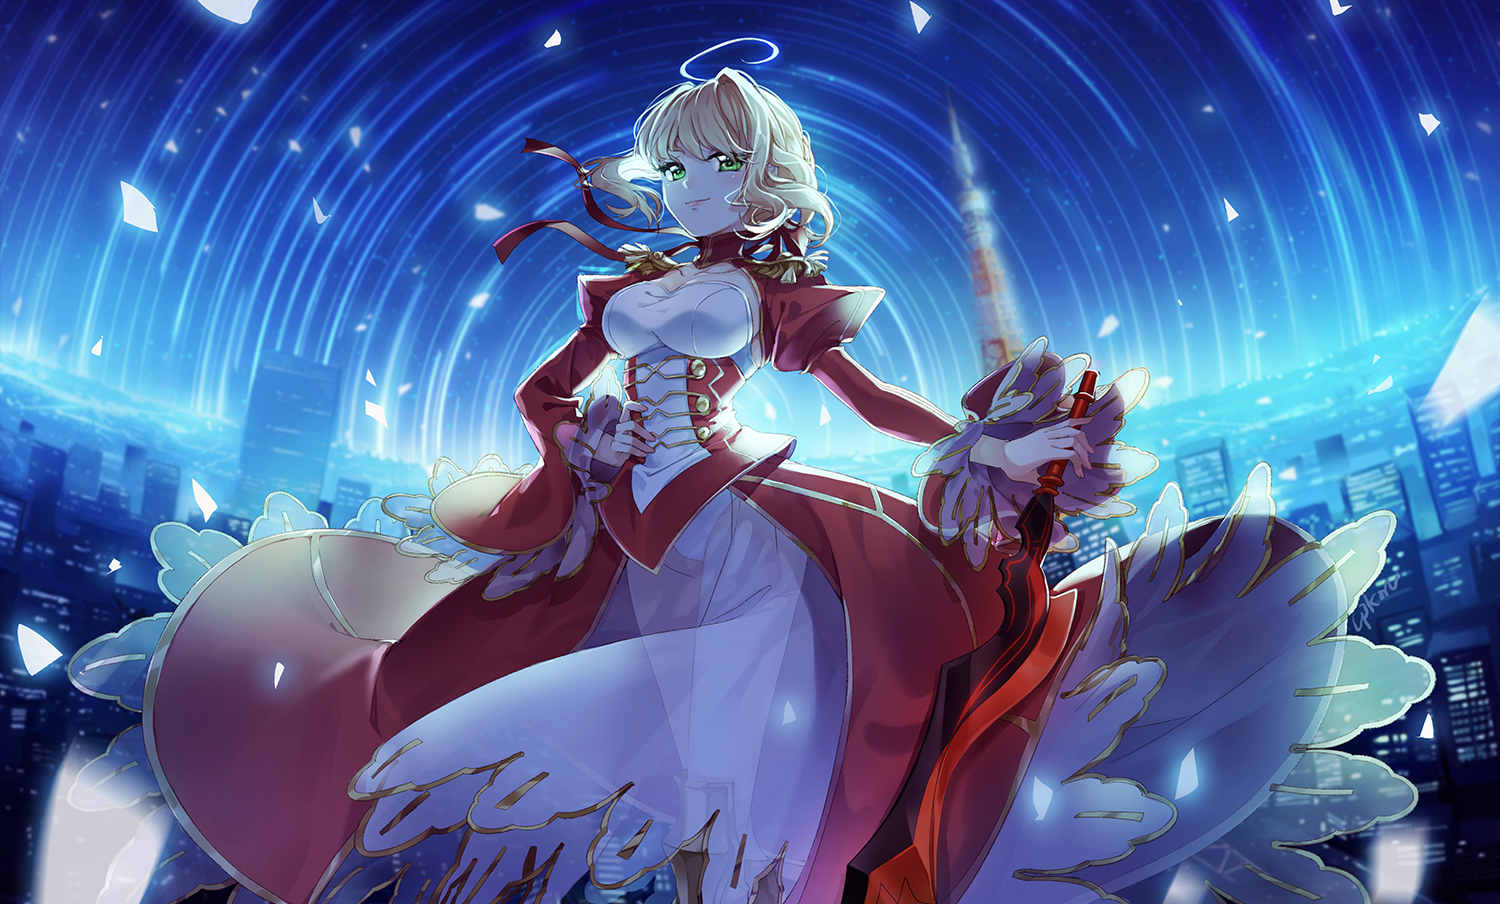 blonde_hair cpkon dress fate/grand_order fate_(series) green_eyes nero_claudius_(fate) short_hair sword weapon